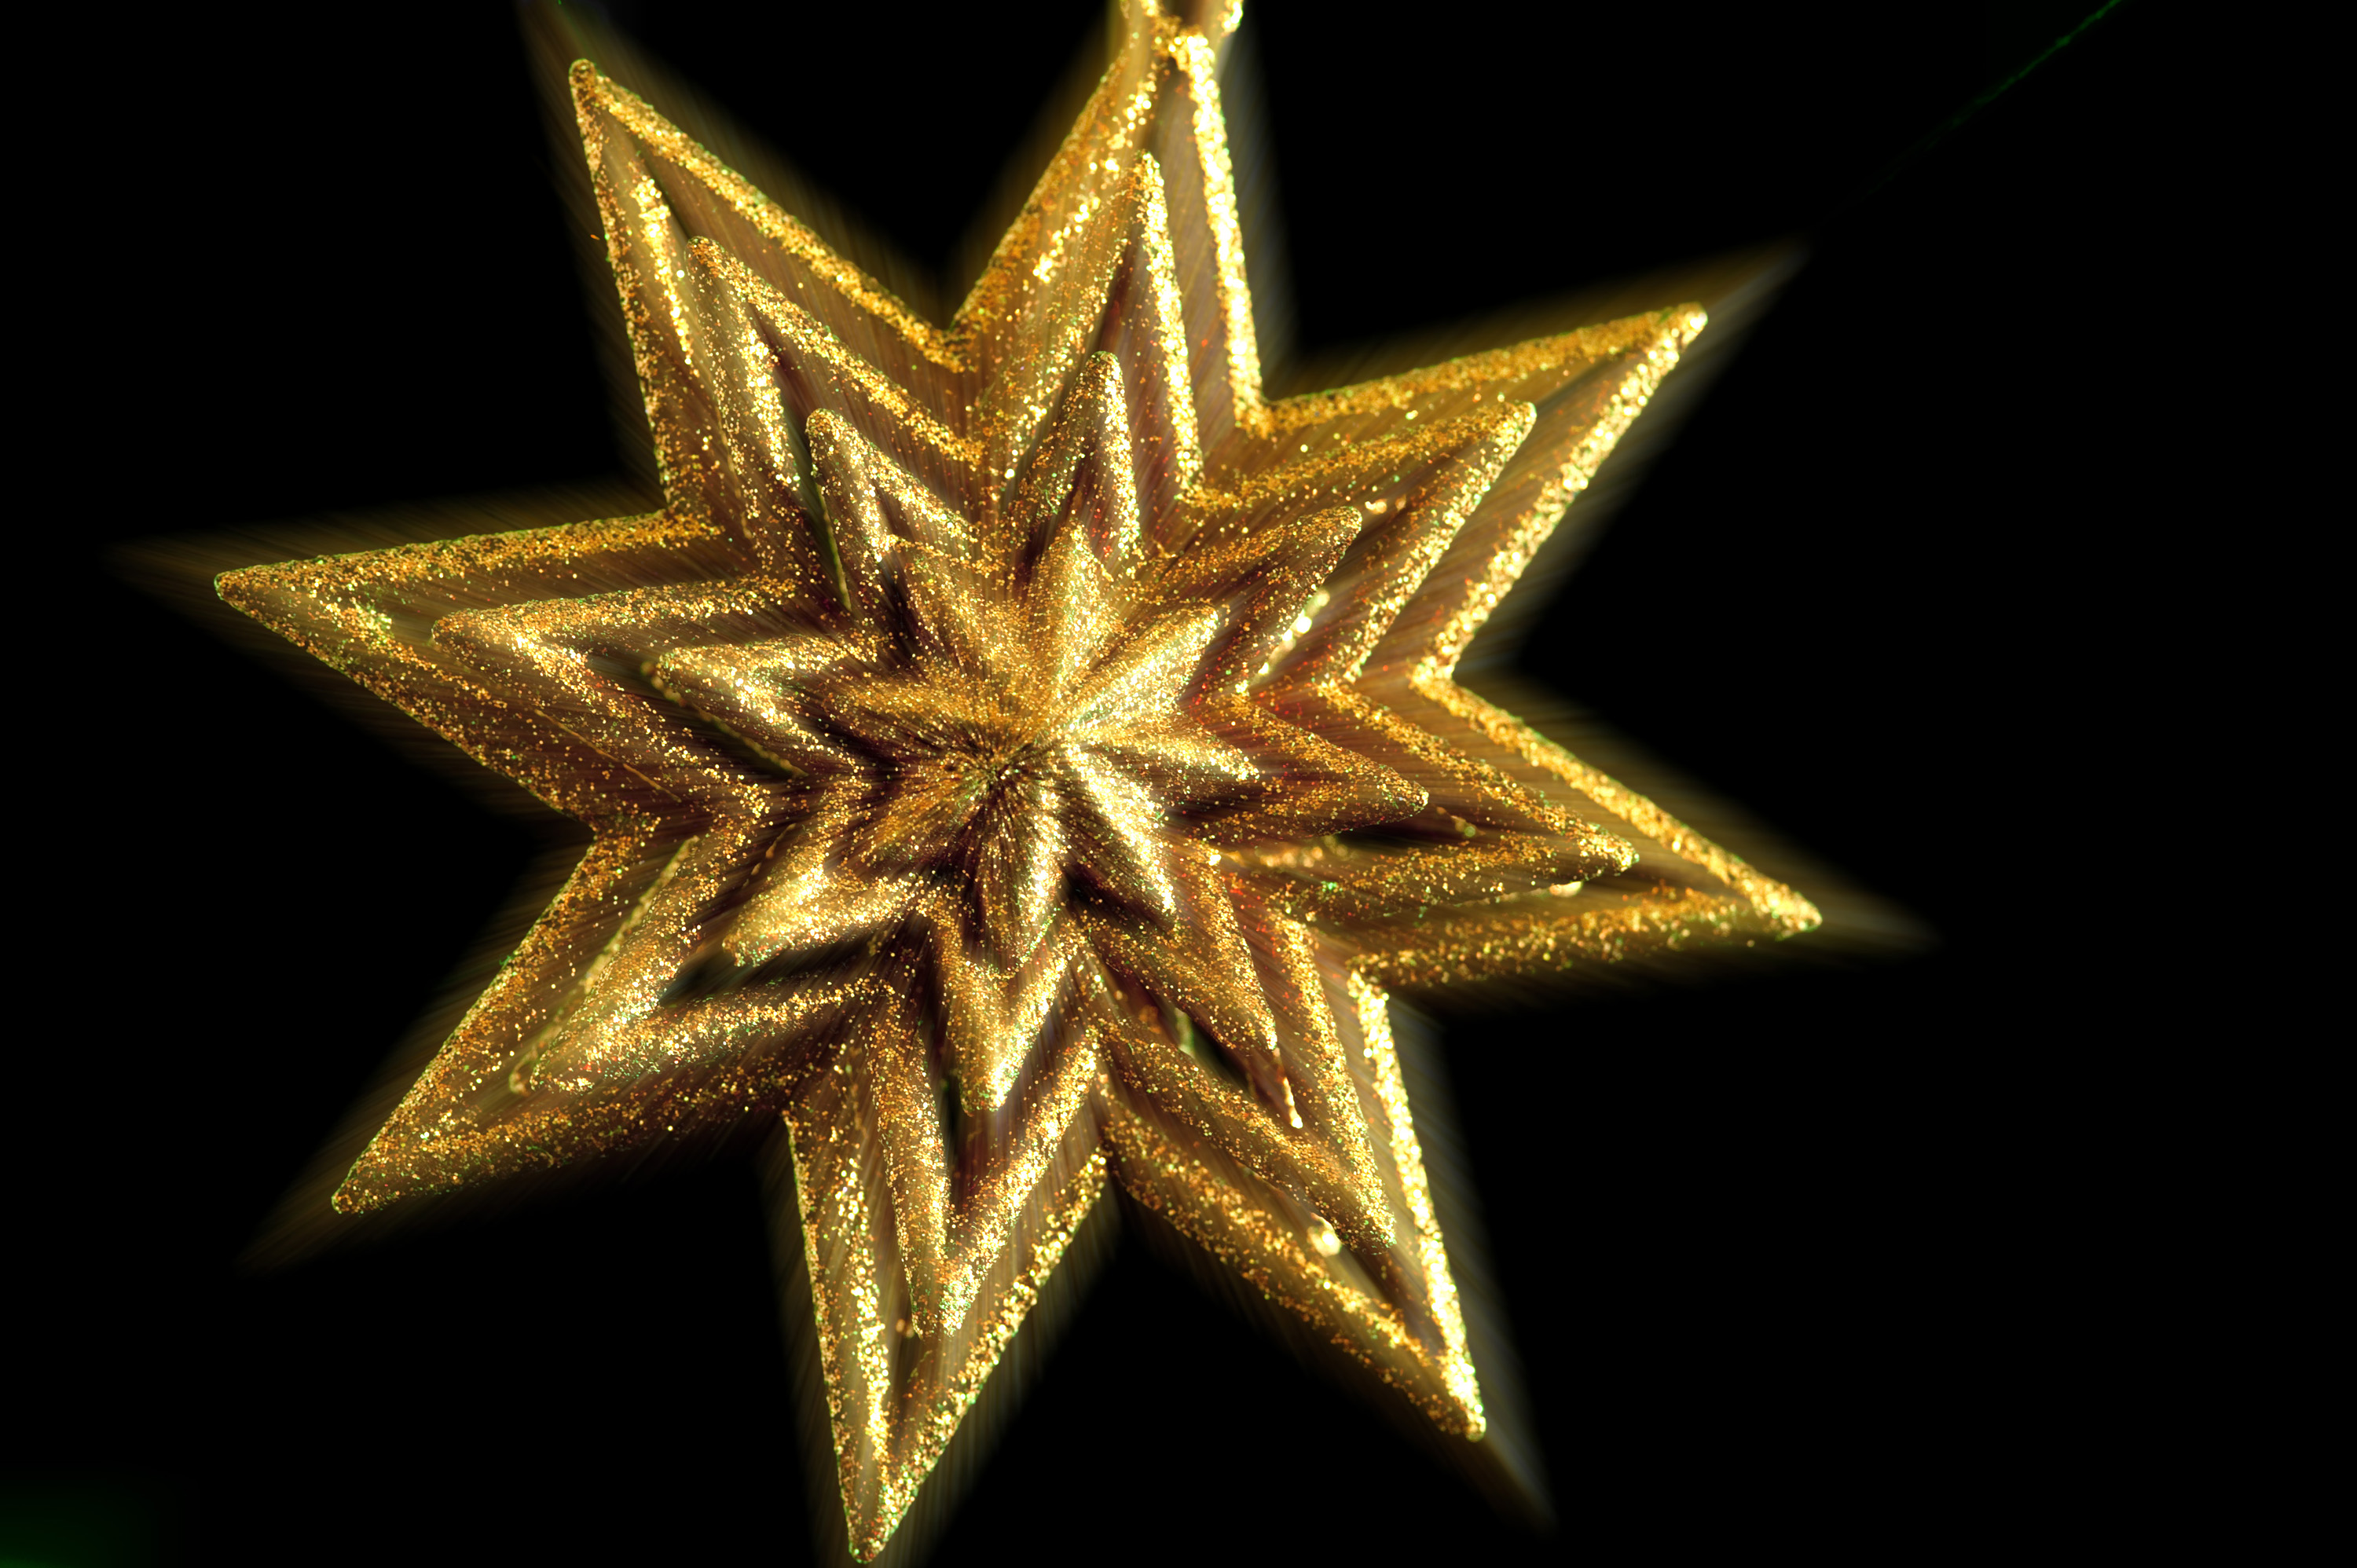 a golden christmas tree top ornament with slap zoom effect